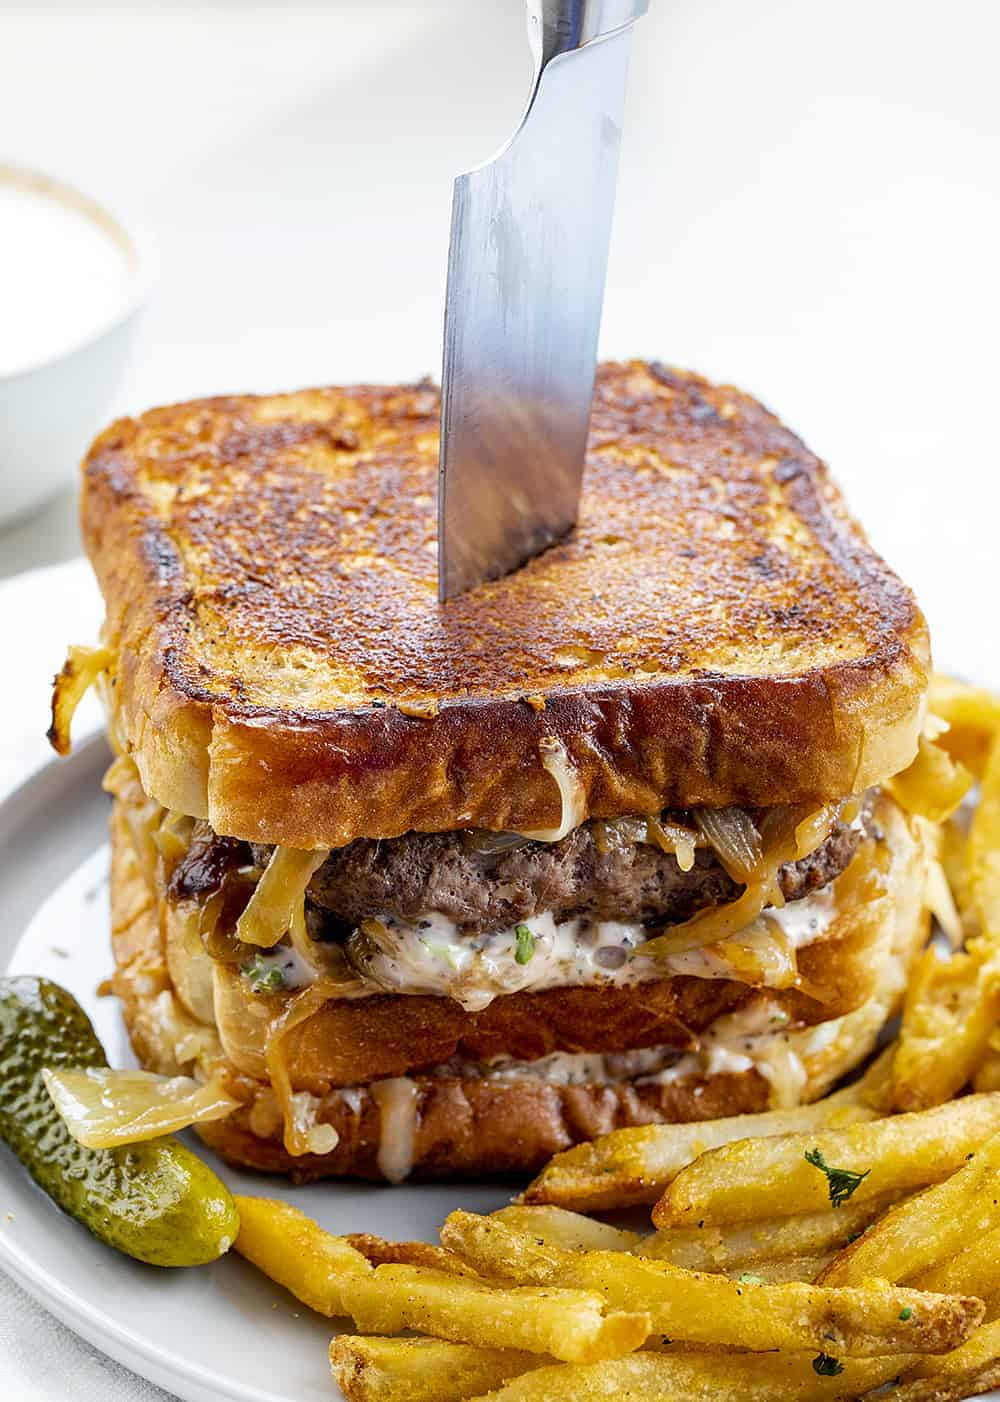 Double Decker Patty Melt Sandwich on a Plate with a Knife in It